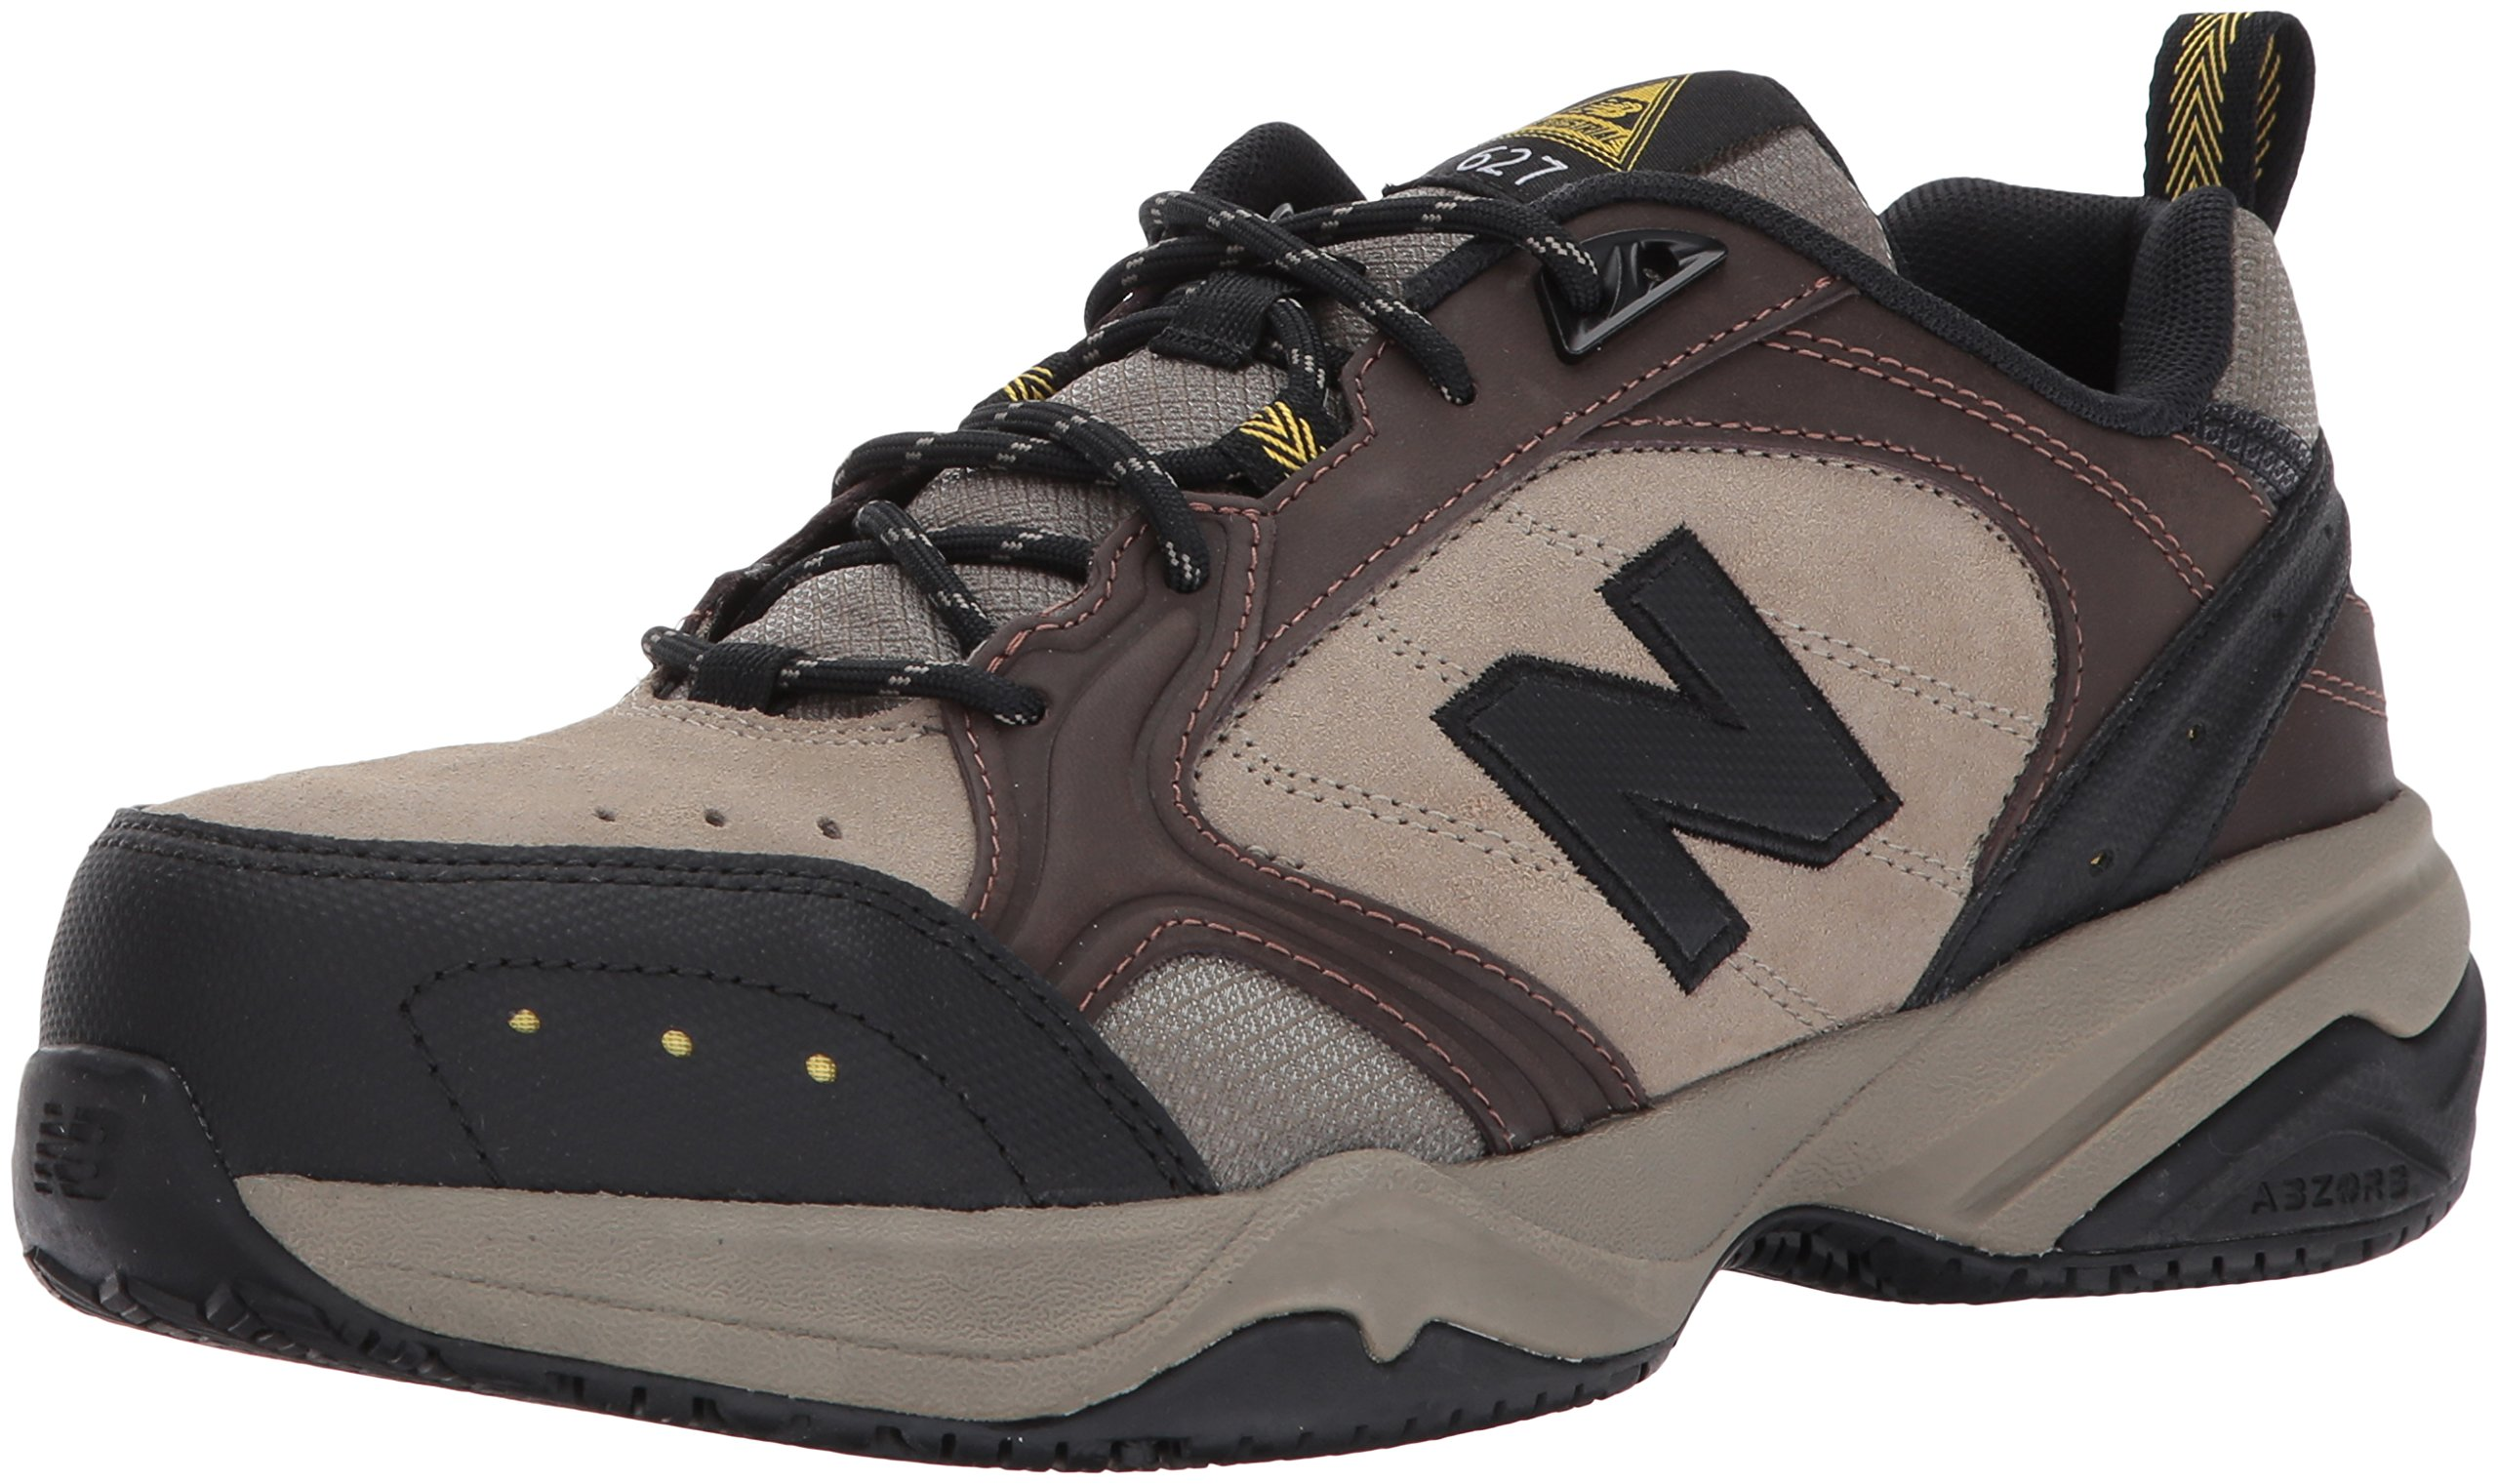 New Balance Men's MID627 Steel-Toe Work Shoe,Brown,18 4E US